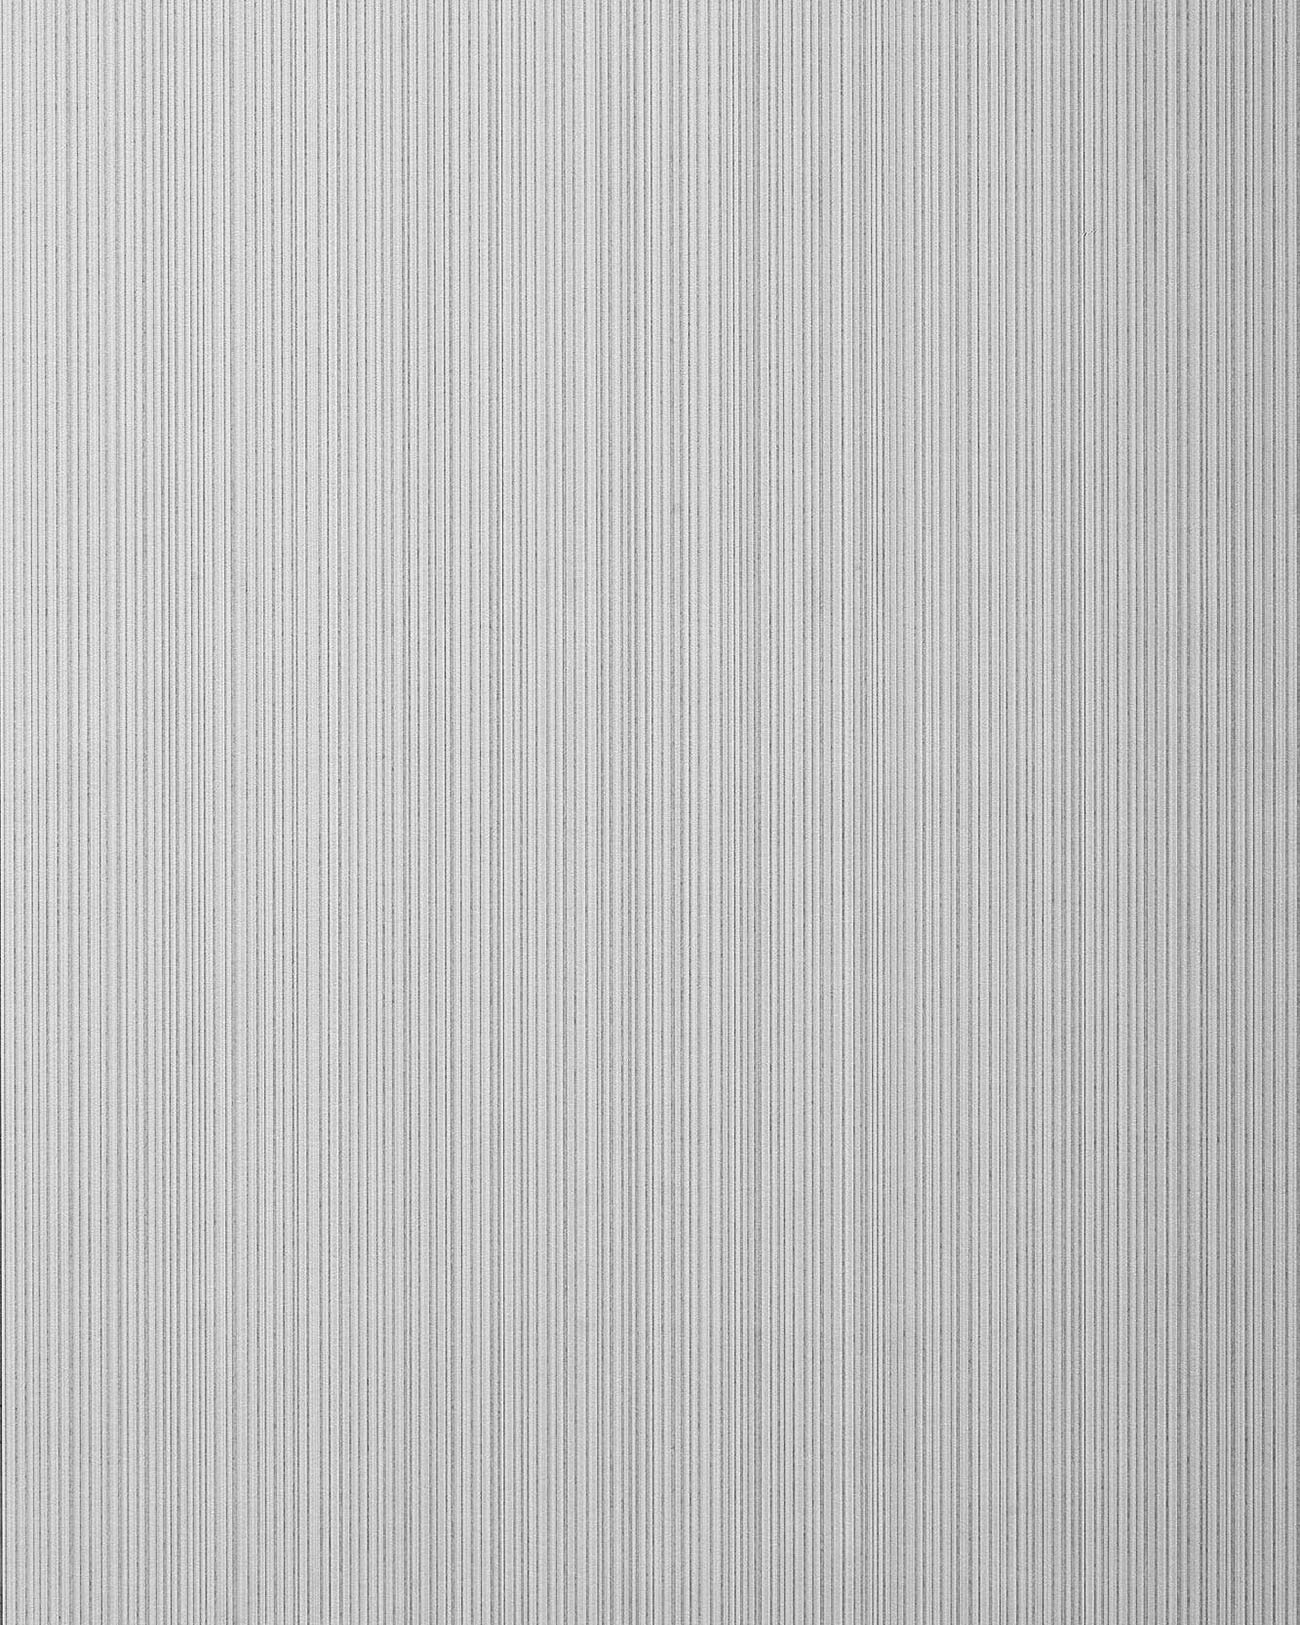 Papel pintado gris y blanco cool download papel pintado for Papel pintado blanco barato